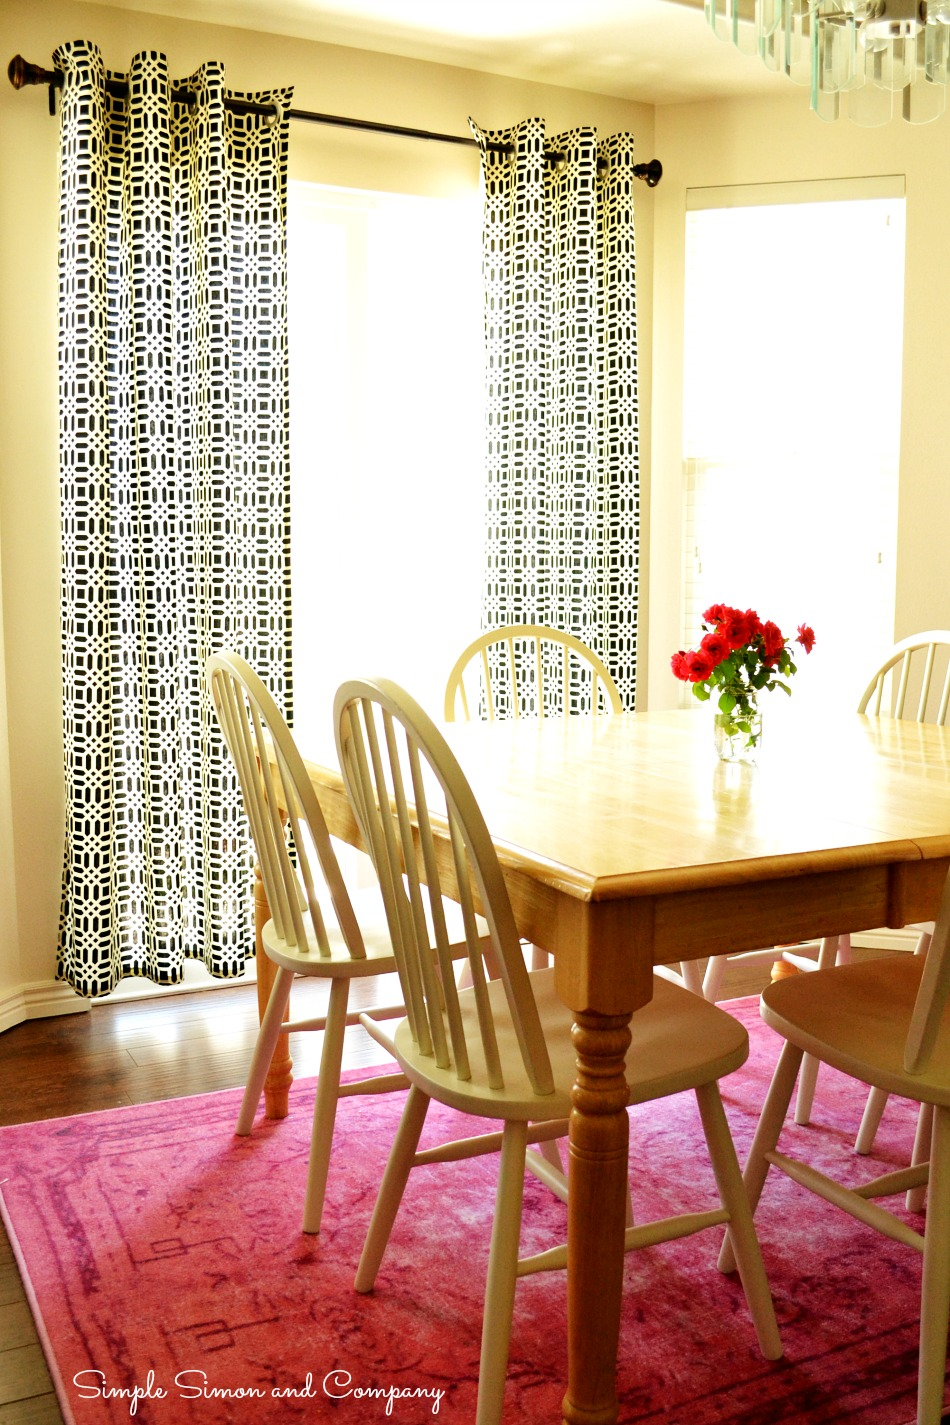 Grommet Curtains Full View